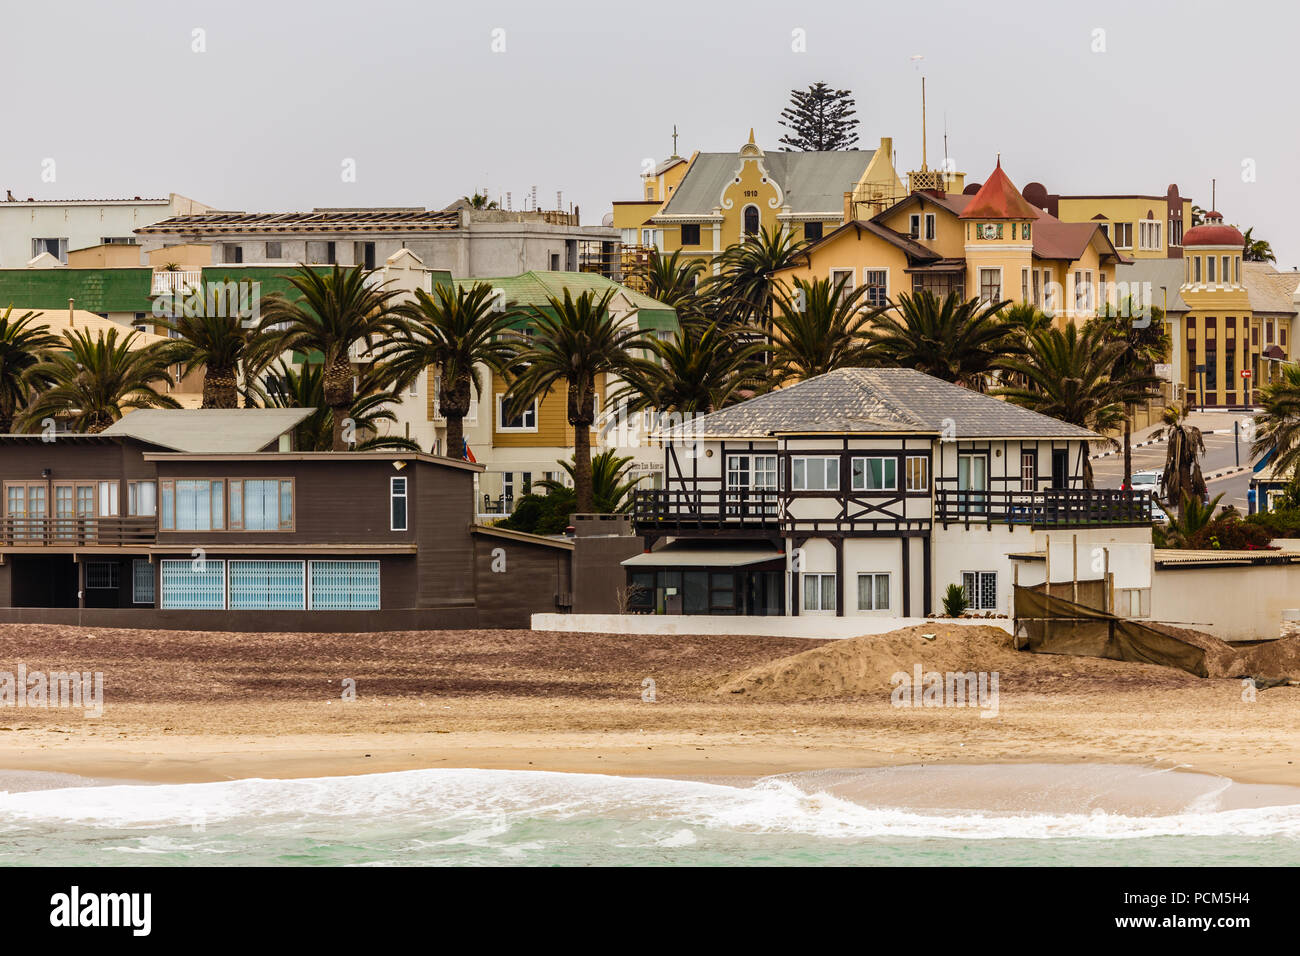 Coastline, palms and old blocks of Swakopmund German colonial town, Namibia - Stock Image